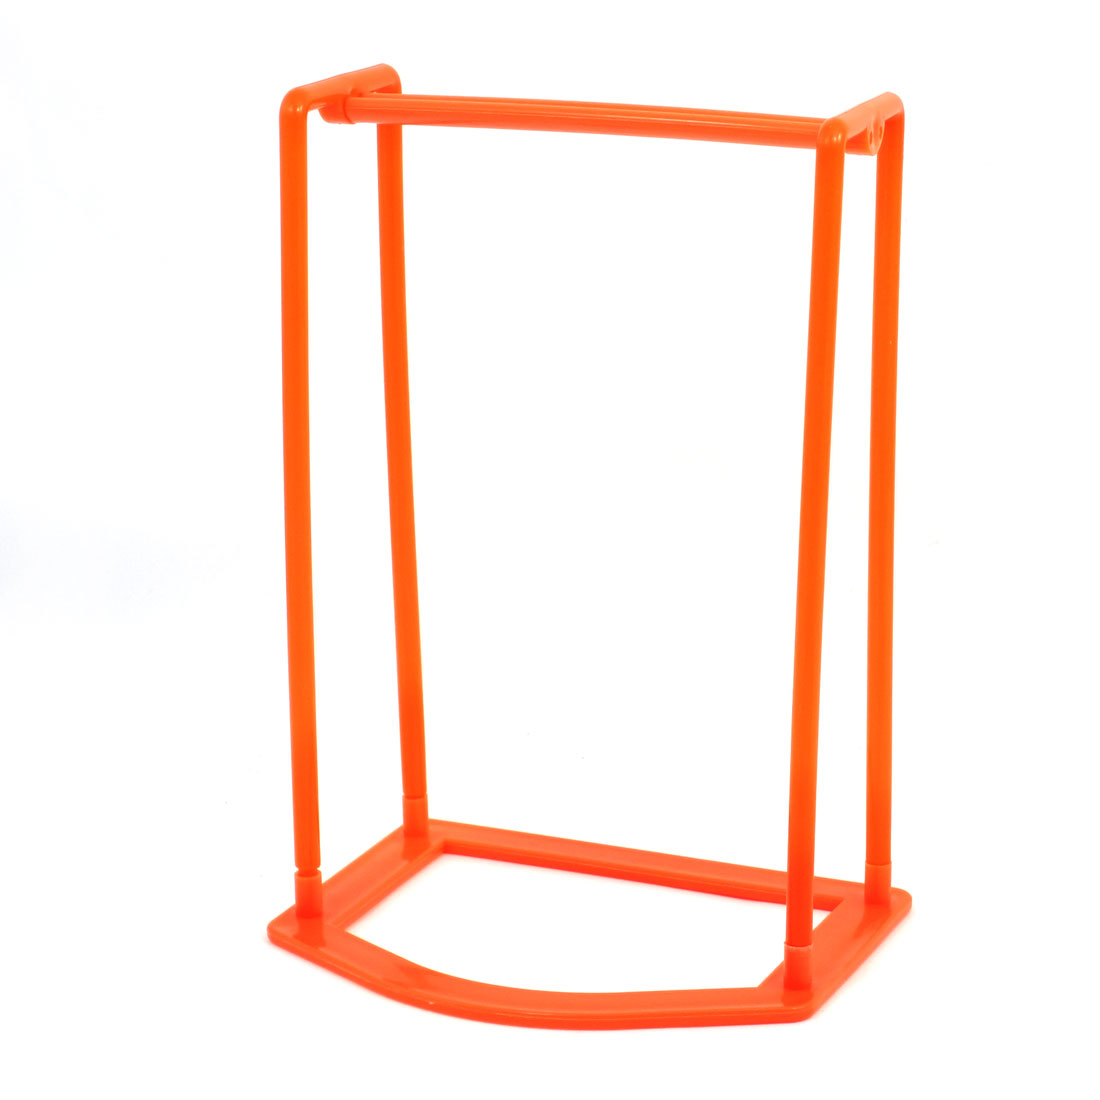 Detachable Orange Plastic Clothes Hanger Storage Holder Laundry Room